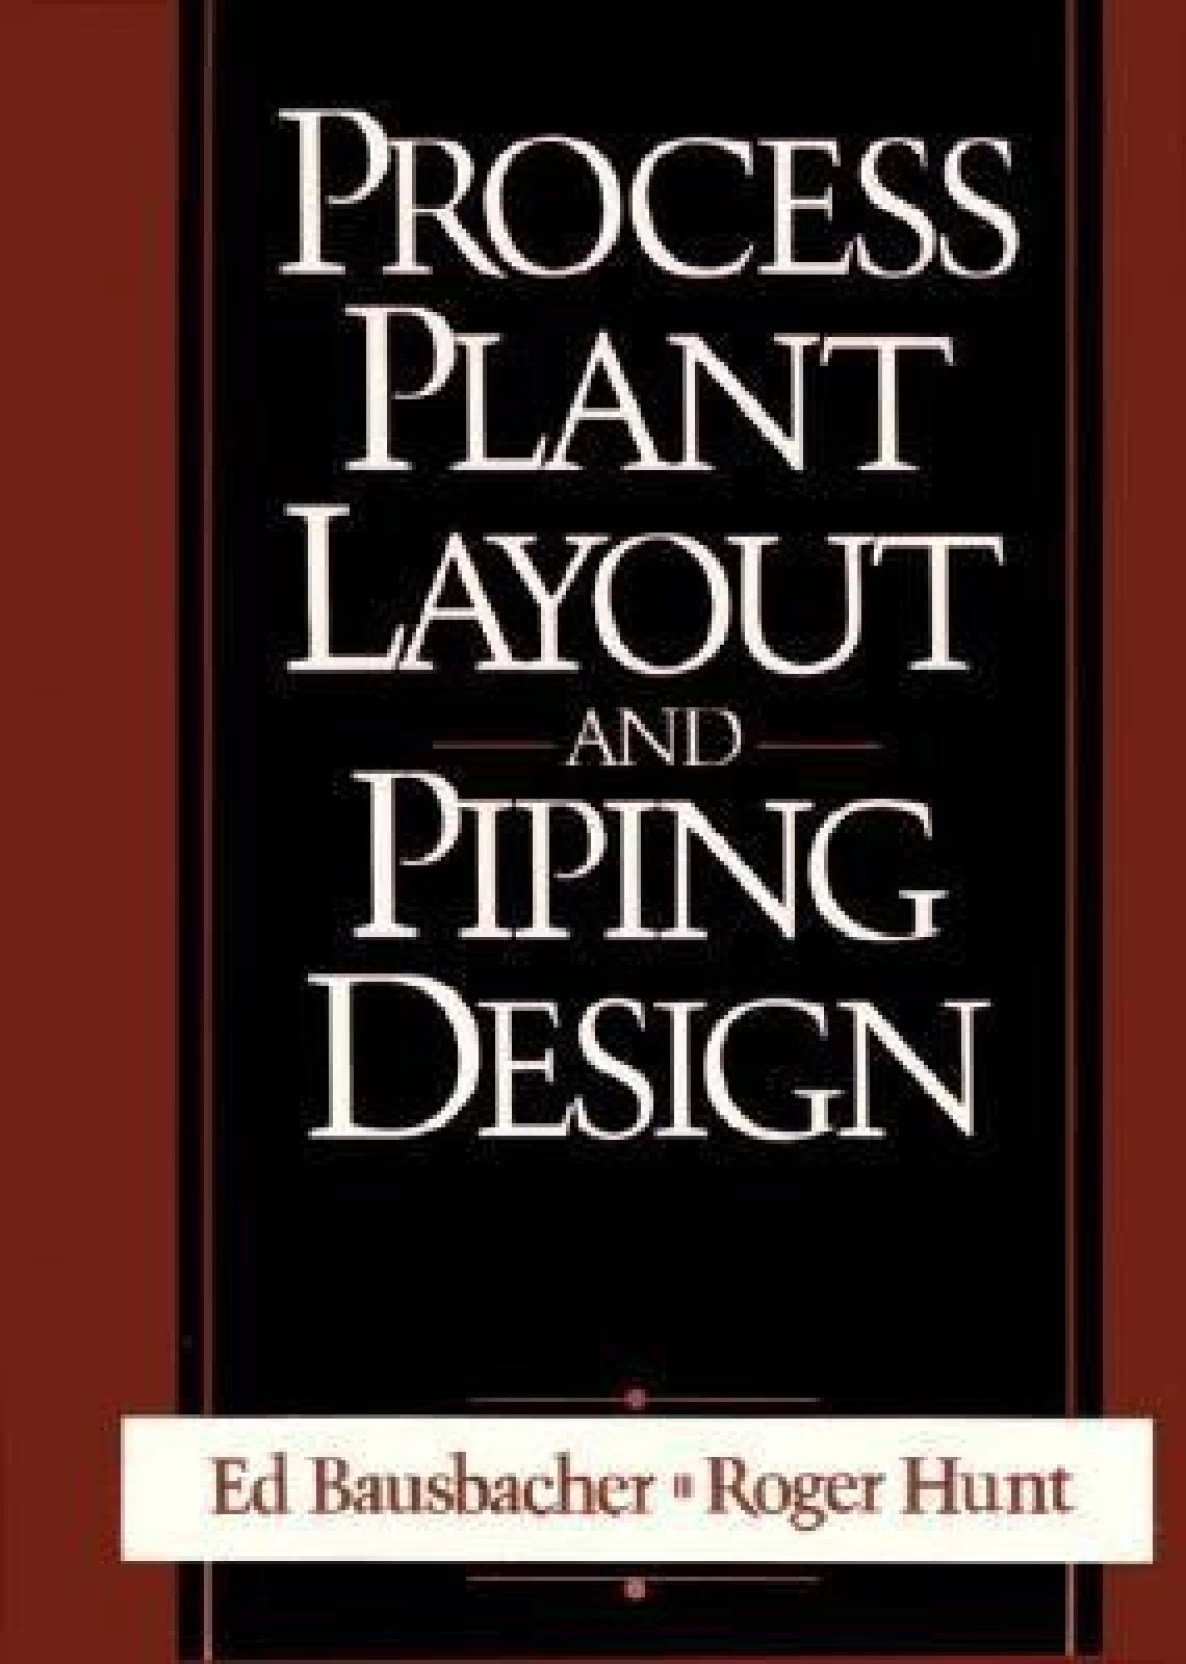 process plant layout and piping design english paperback roger hunt ed bausbacher  [ 1186 x 1664 Pixel ]